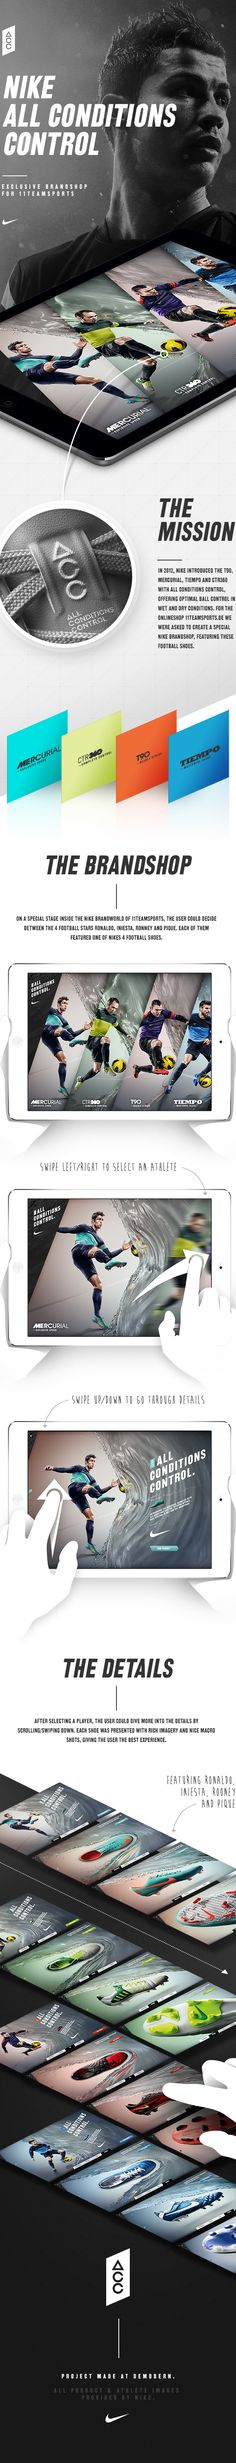 Nike Football – All Conditions Control Brandshop on App Design Served